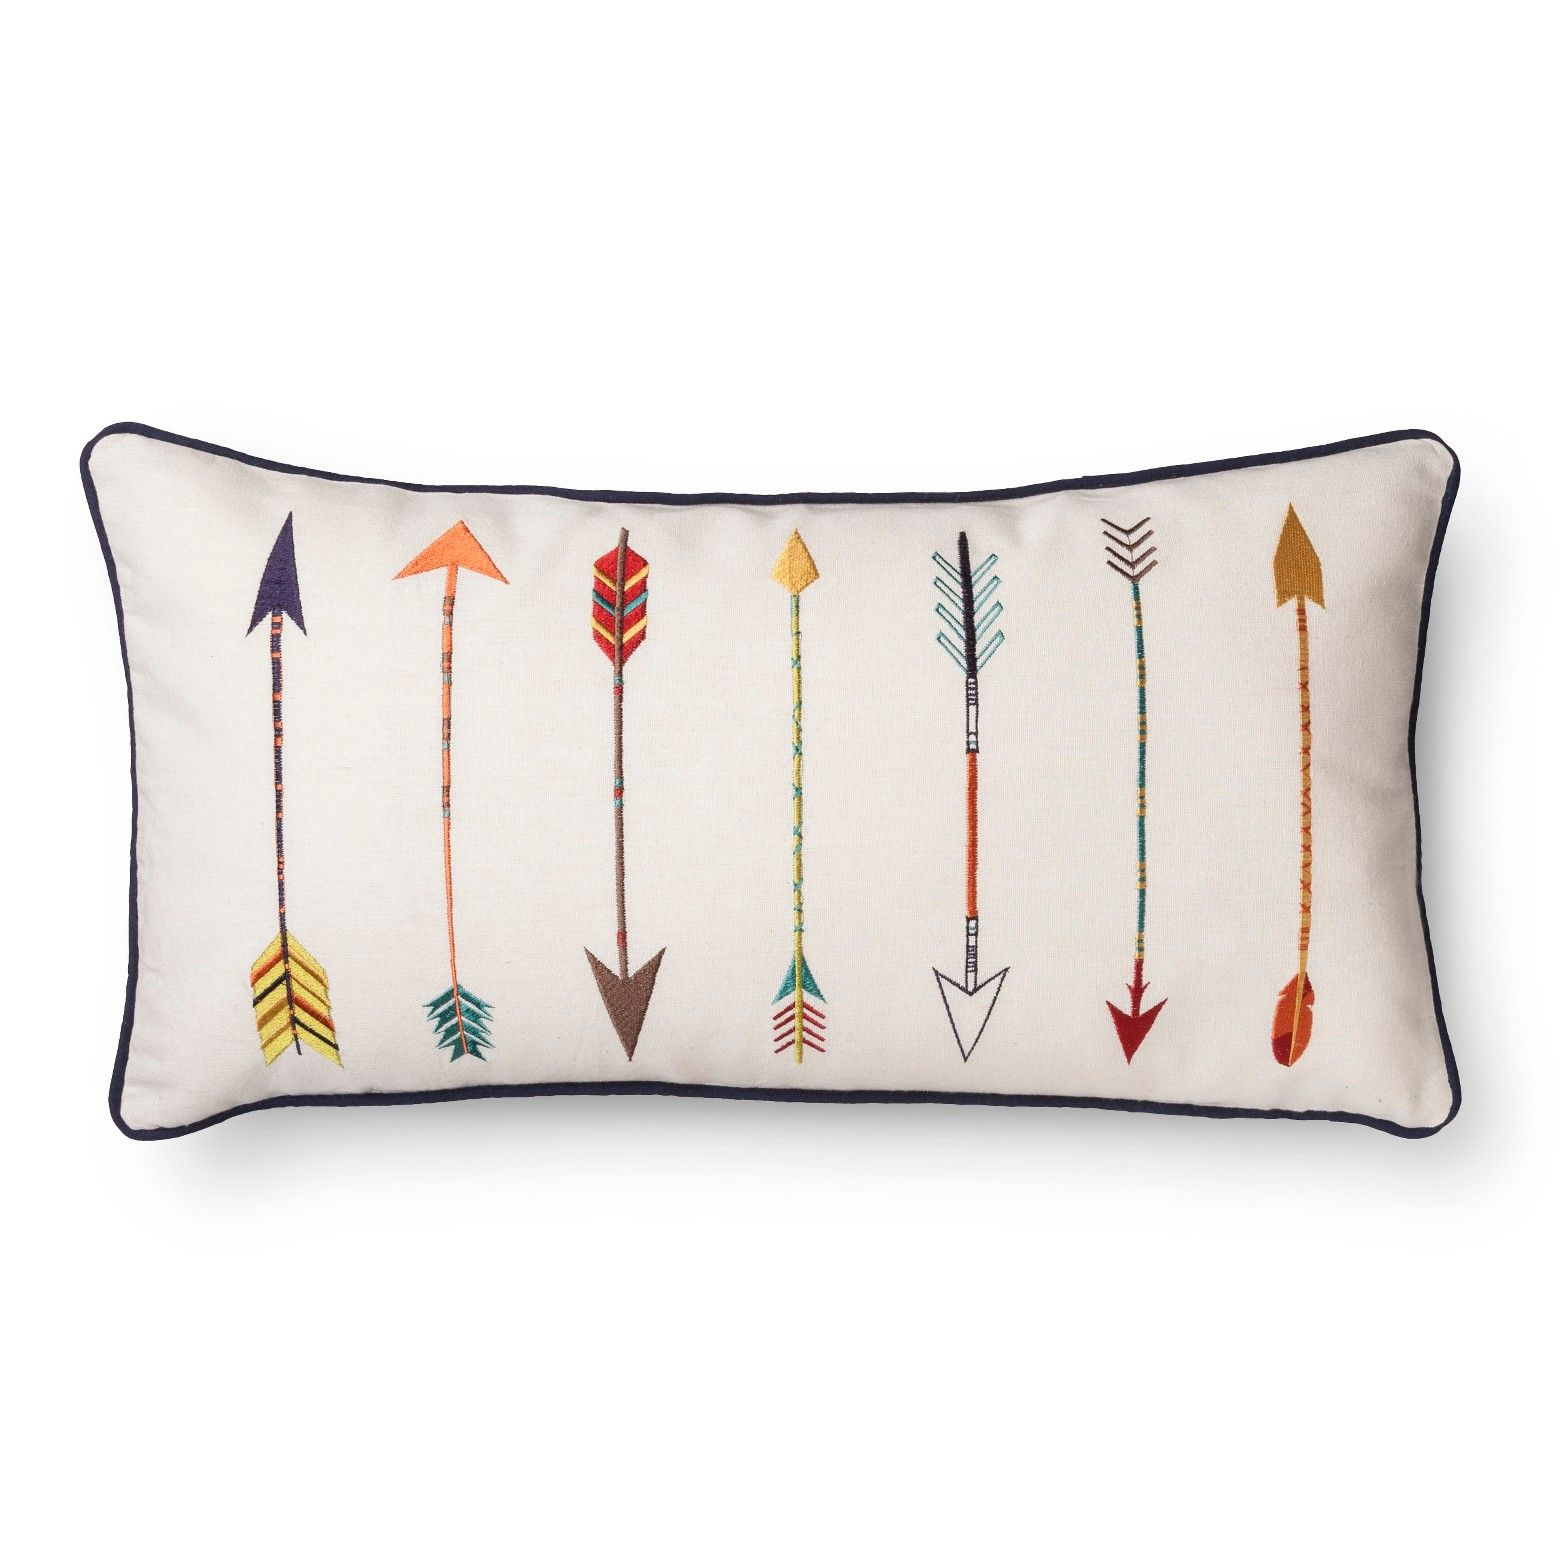 Add Some Color To Your Bedding Collection With The Mudhut Almeria Arrow Pillow In Multicolored Embroidered Arrows Arrow Pillow Adventure Throw Pillow Pillows